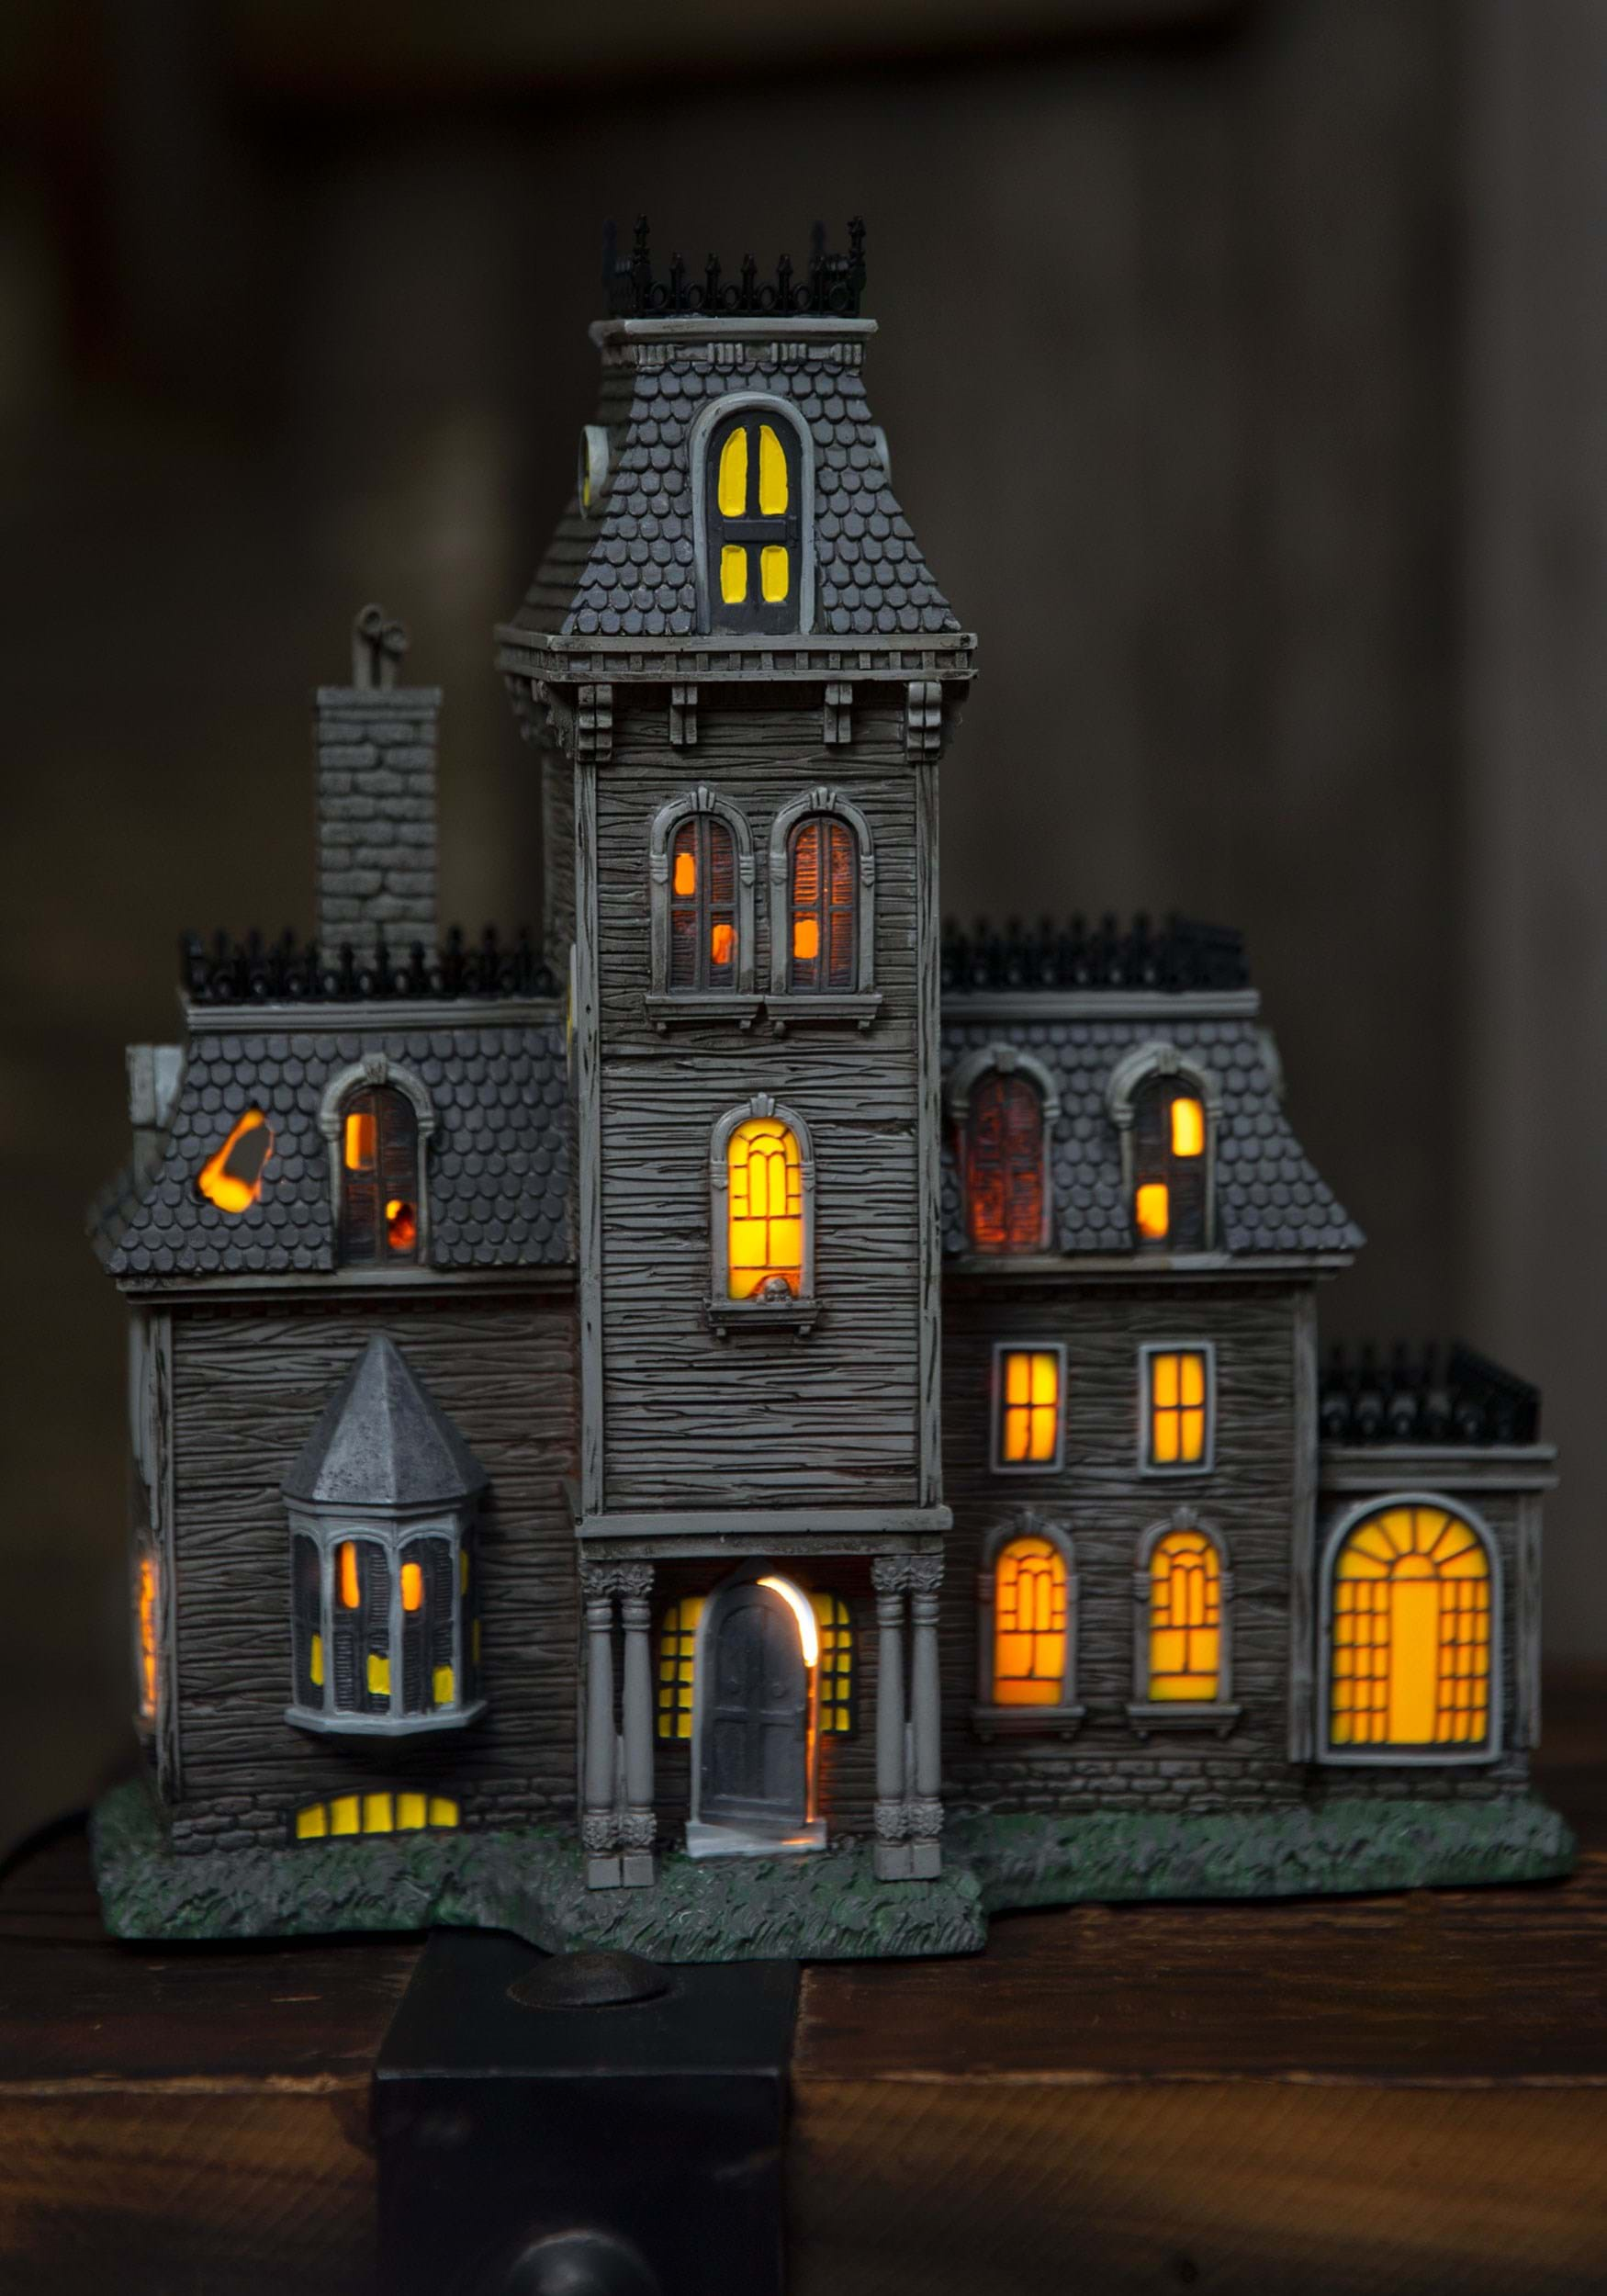 The Addams Family Lighted House Building By Department 56